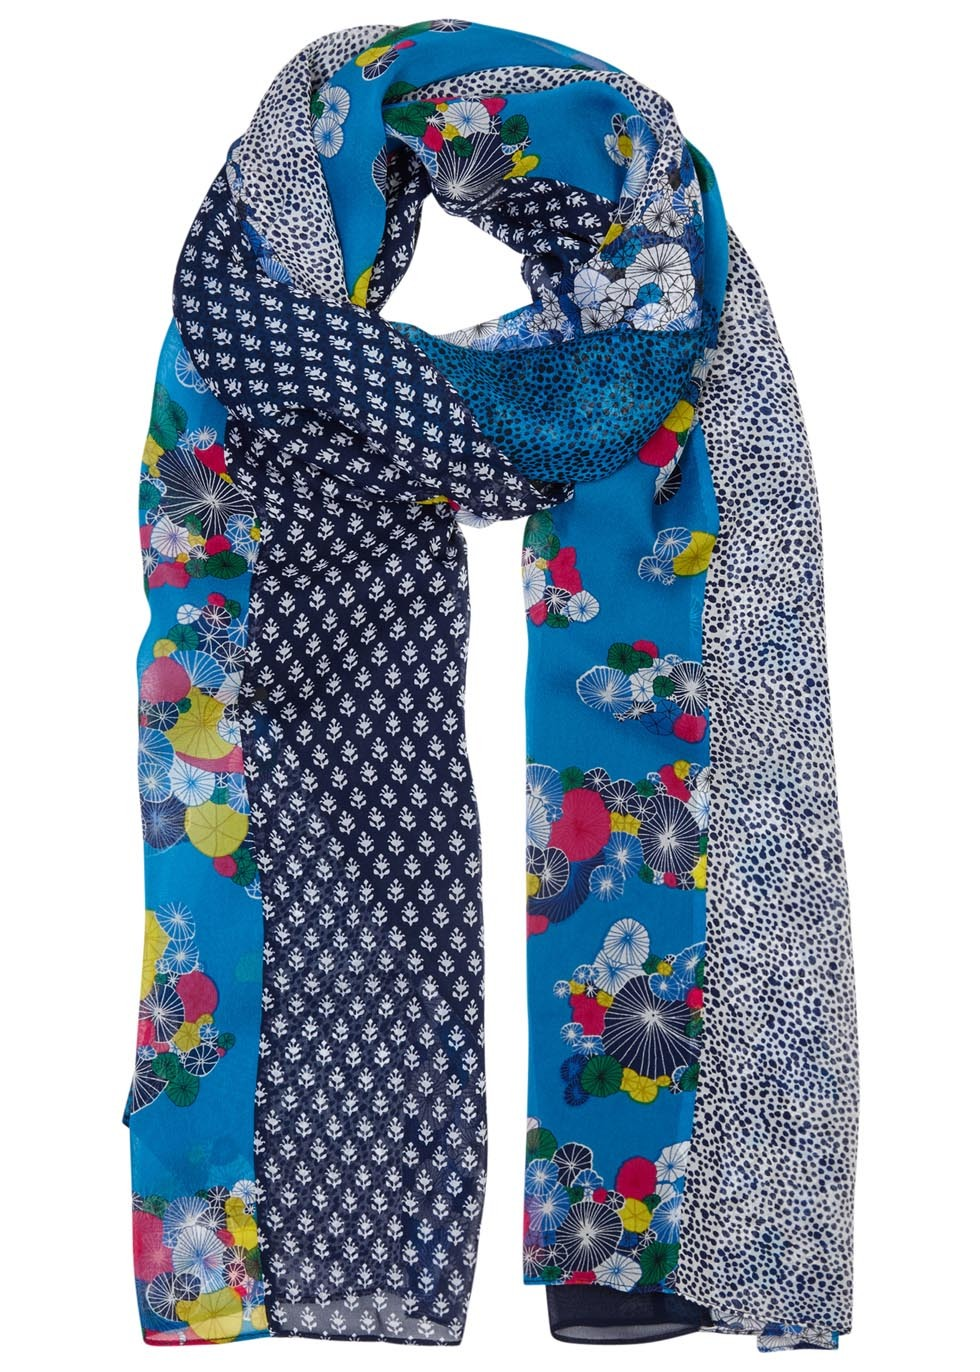 Printed Chiffon Scarf - predominant colour: diva blue; secondary colour: navy; occasions: casual, creative work; type of pattern: heavy; style: regular; size: standard; material: fabric; pattern: patterned/print; season: s/s 2016; wardrobe: highlight